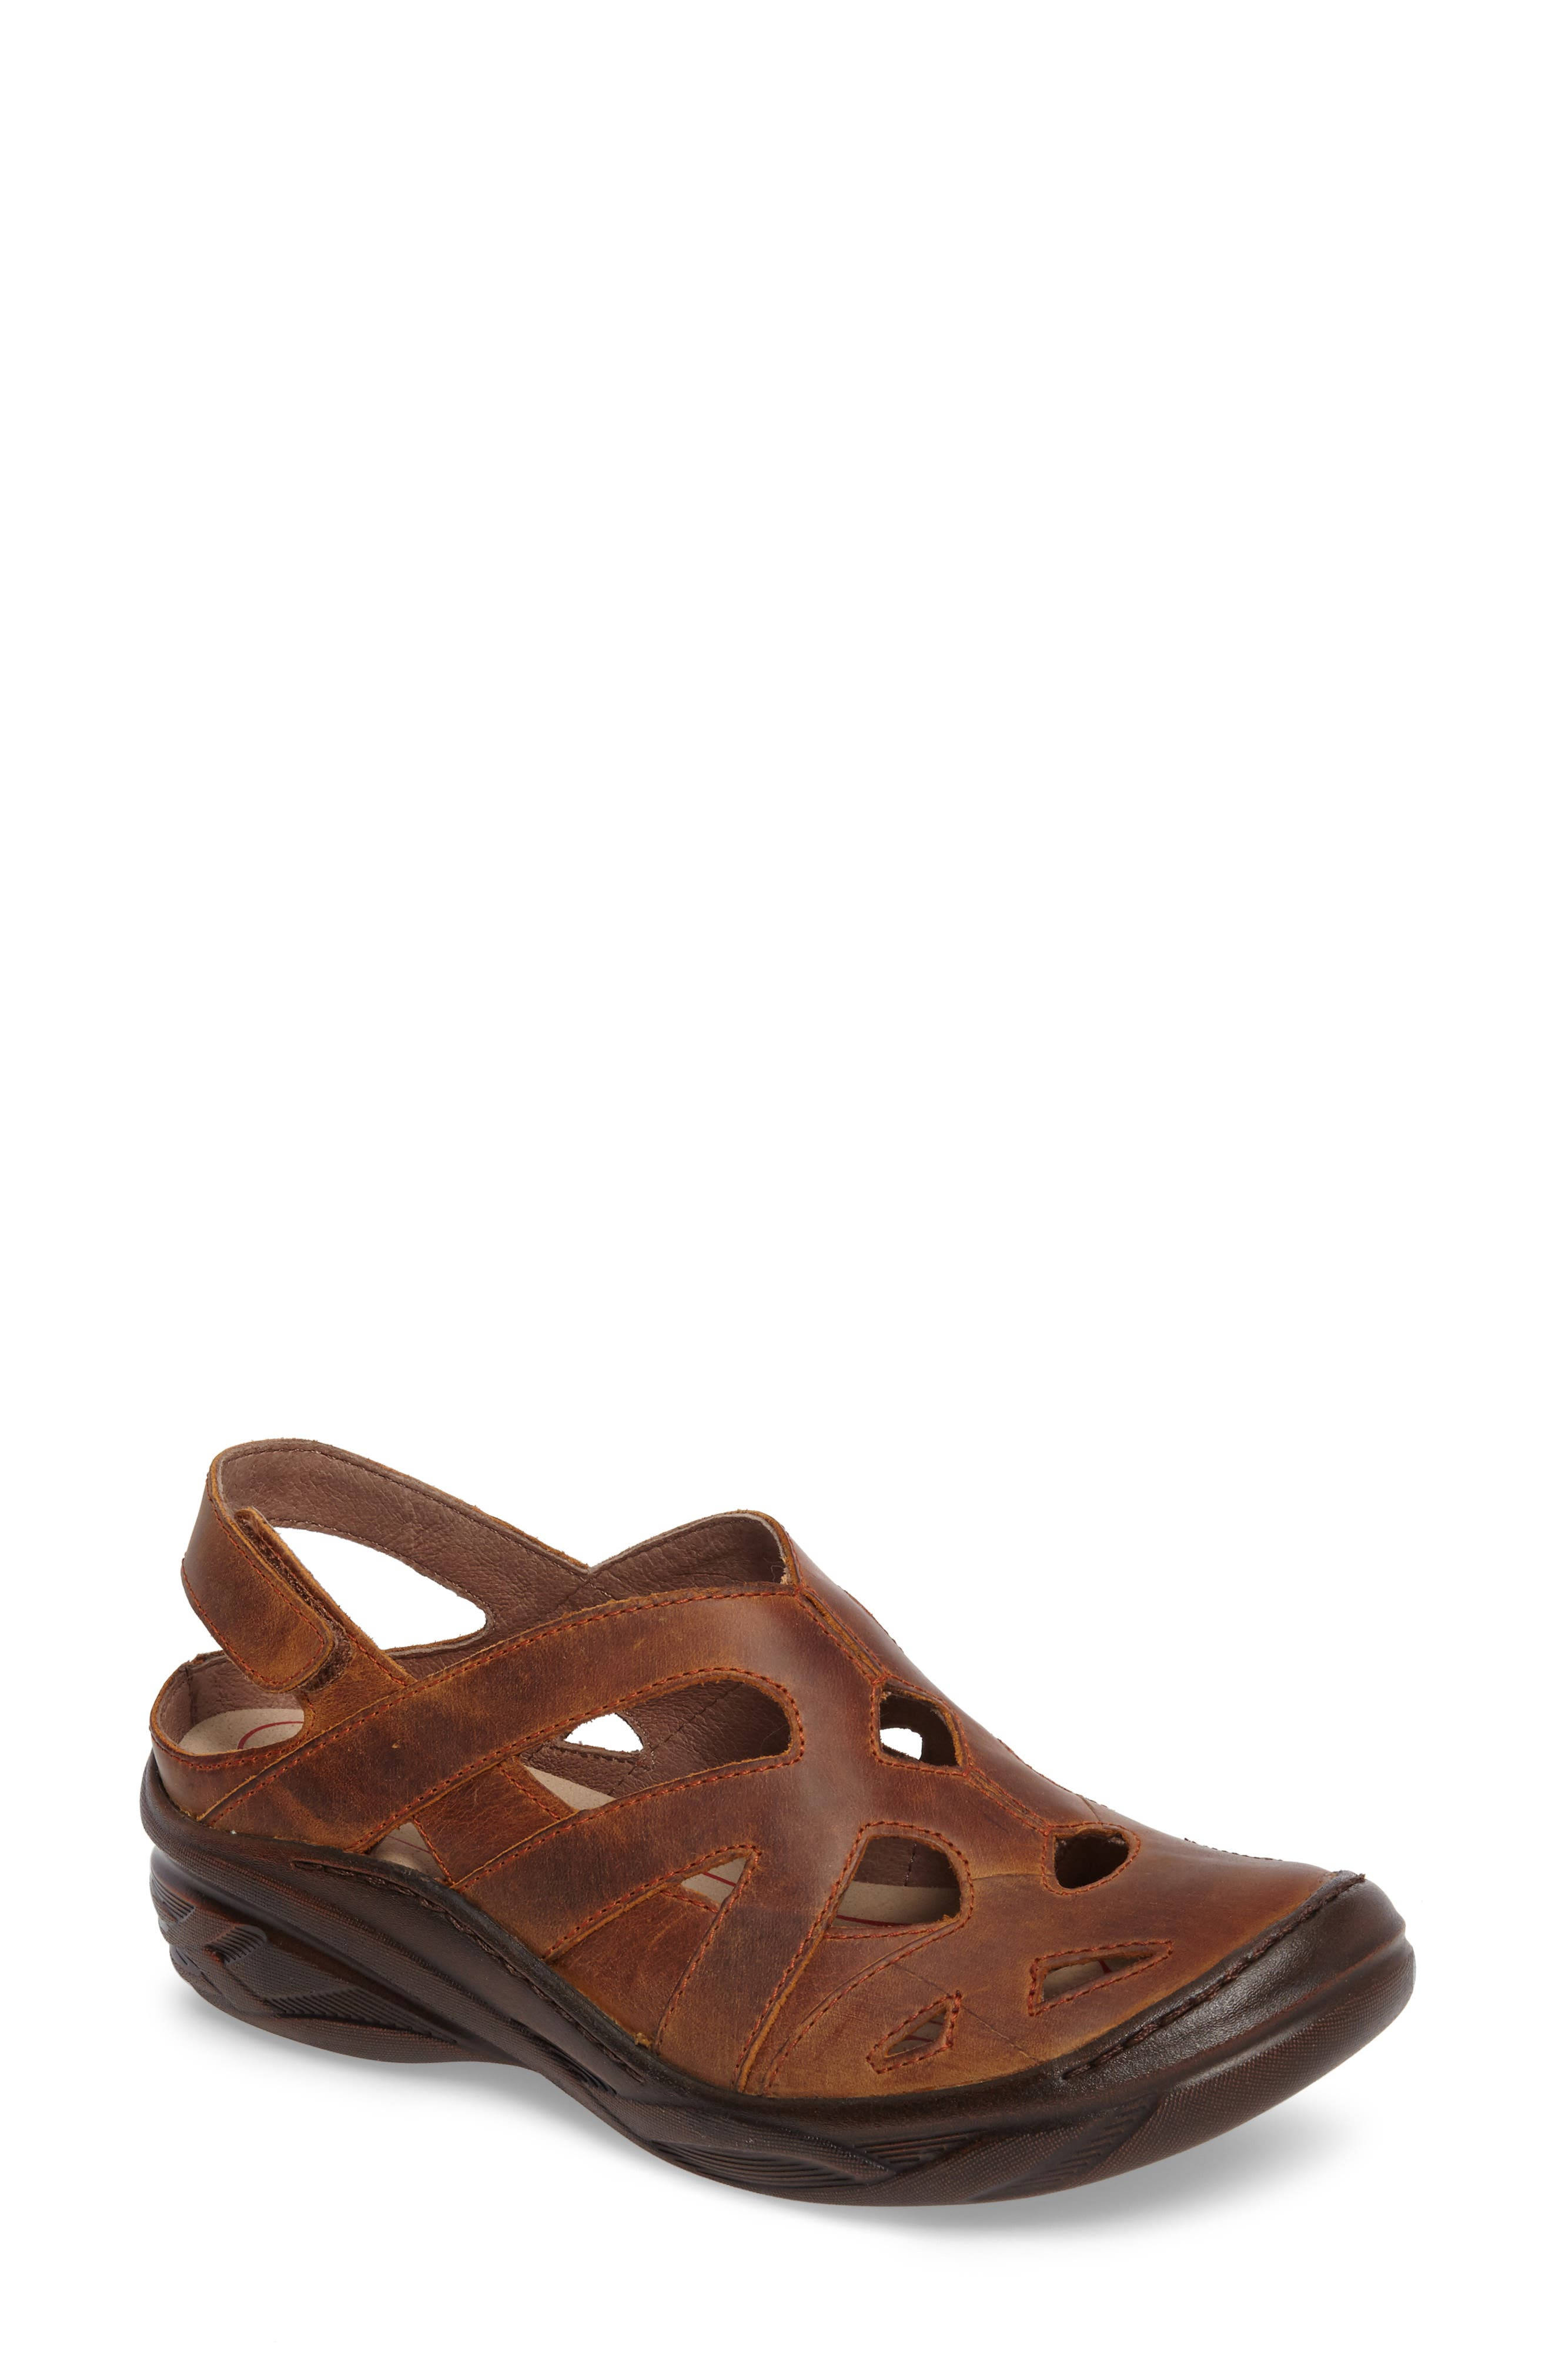 BIONICA Maclean Sandal, Main, color, ALMOND TAN LEATHER